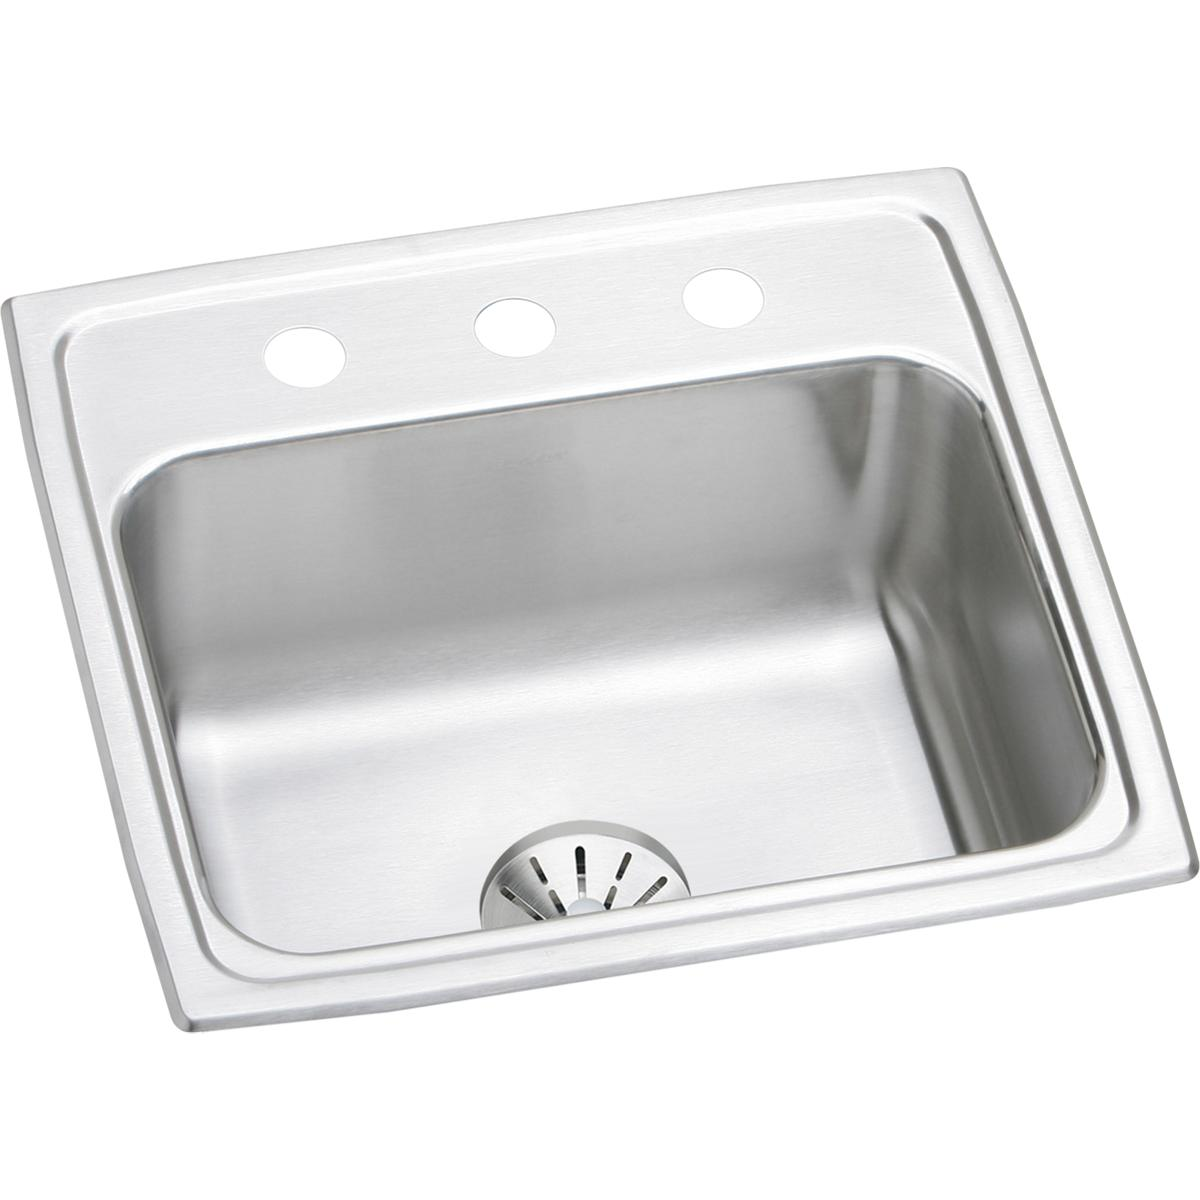 "Elkay Lustertone Classic Stainless Steel 19-1/2"" x 19"" x 7-1/2"", Single Bowl Drop-in Sink with Perfect Drain"